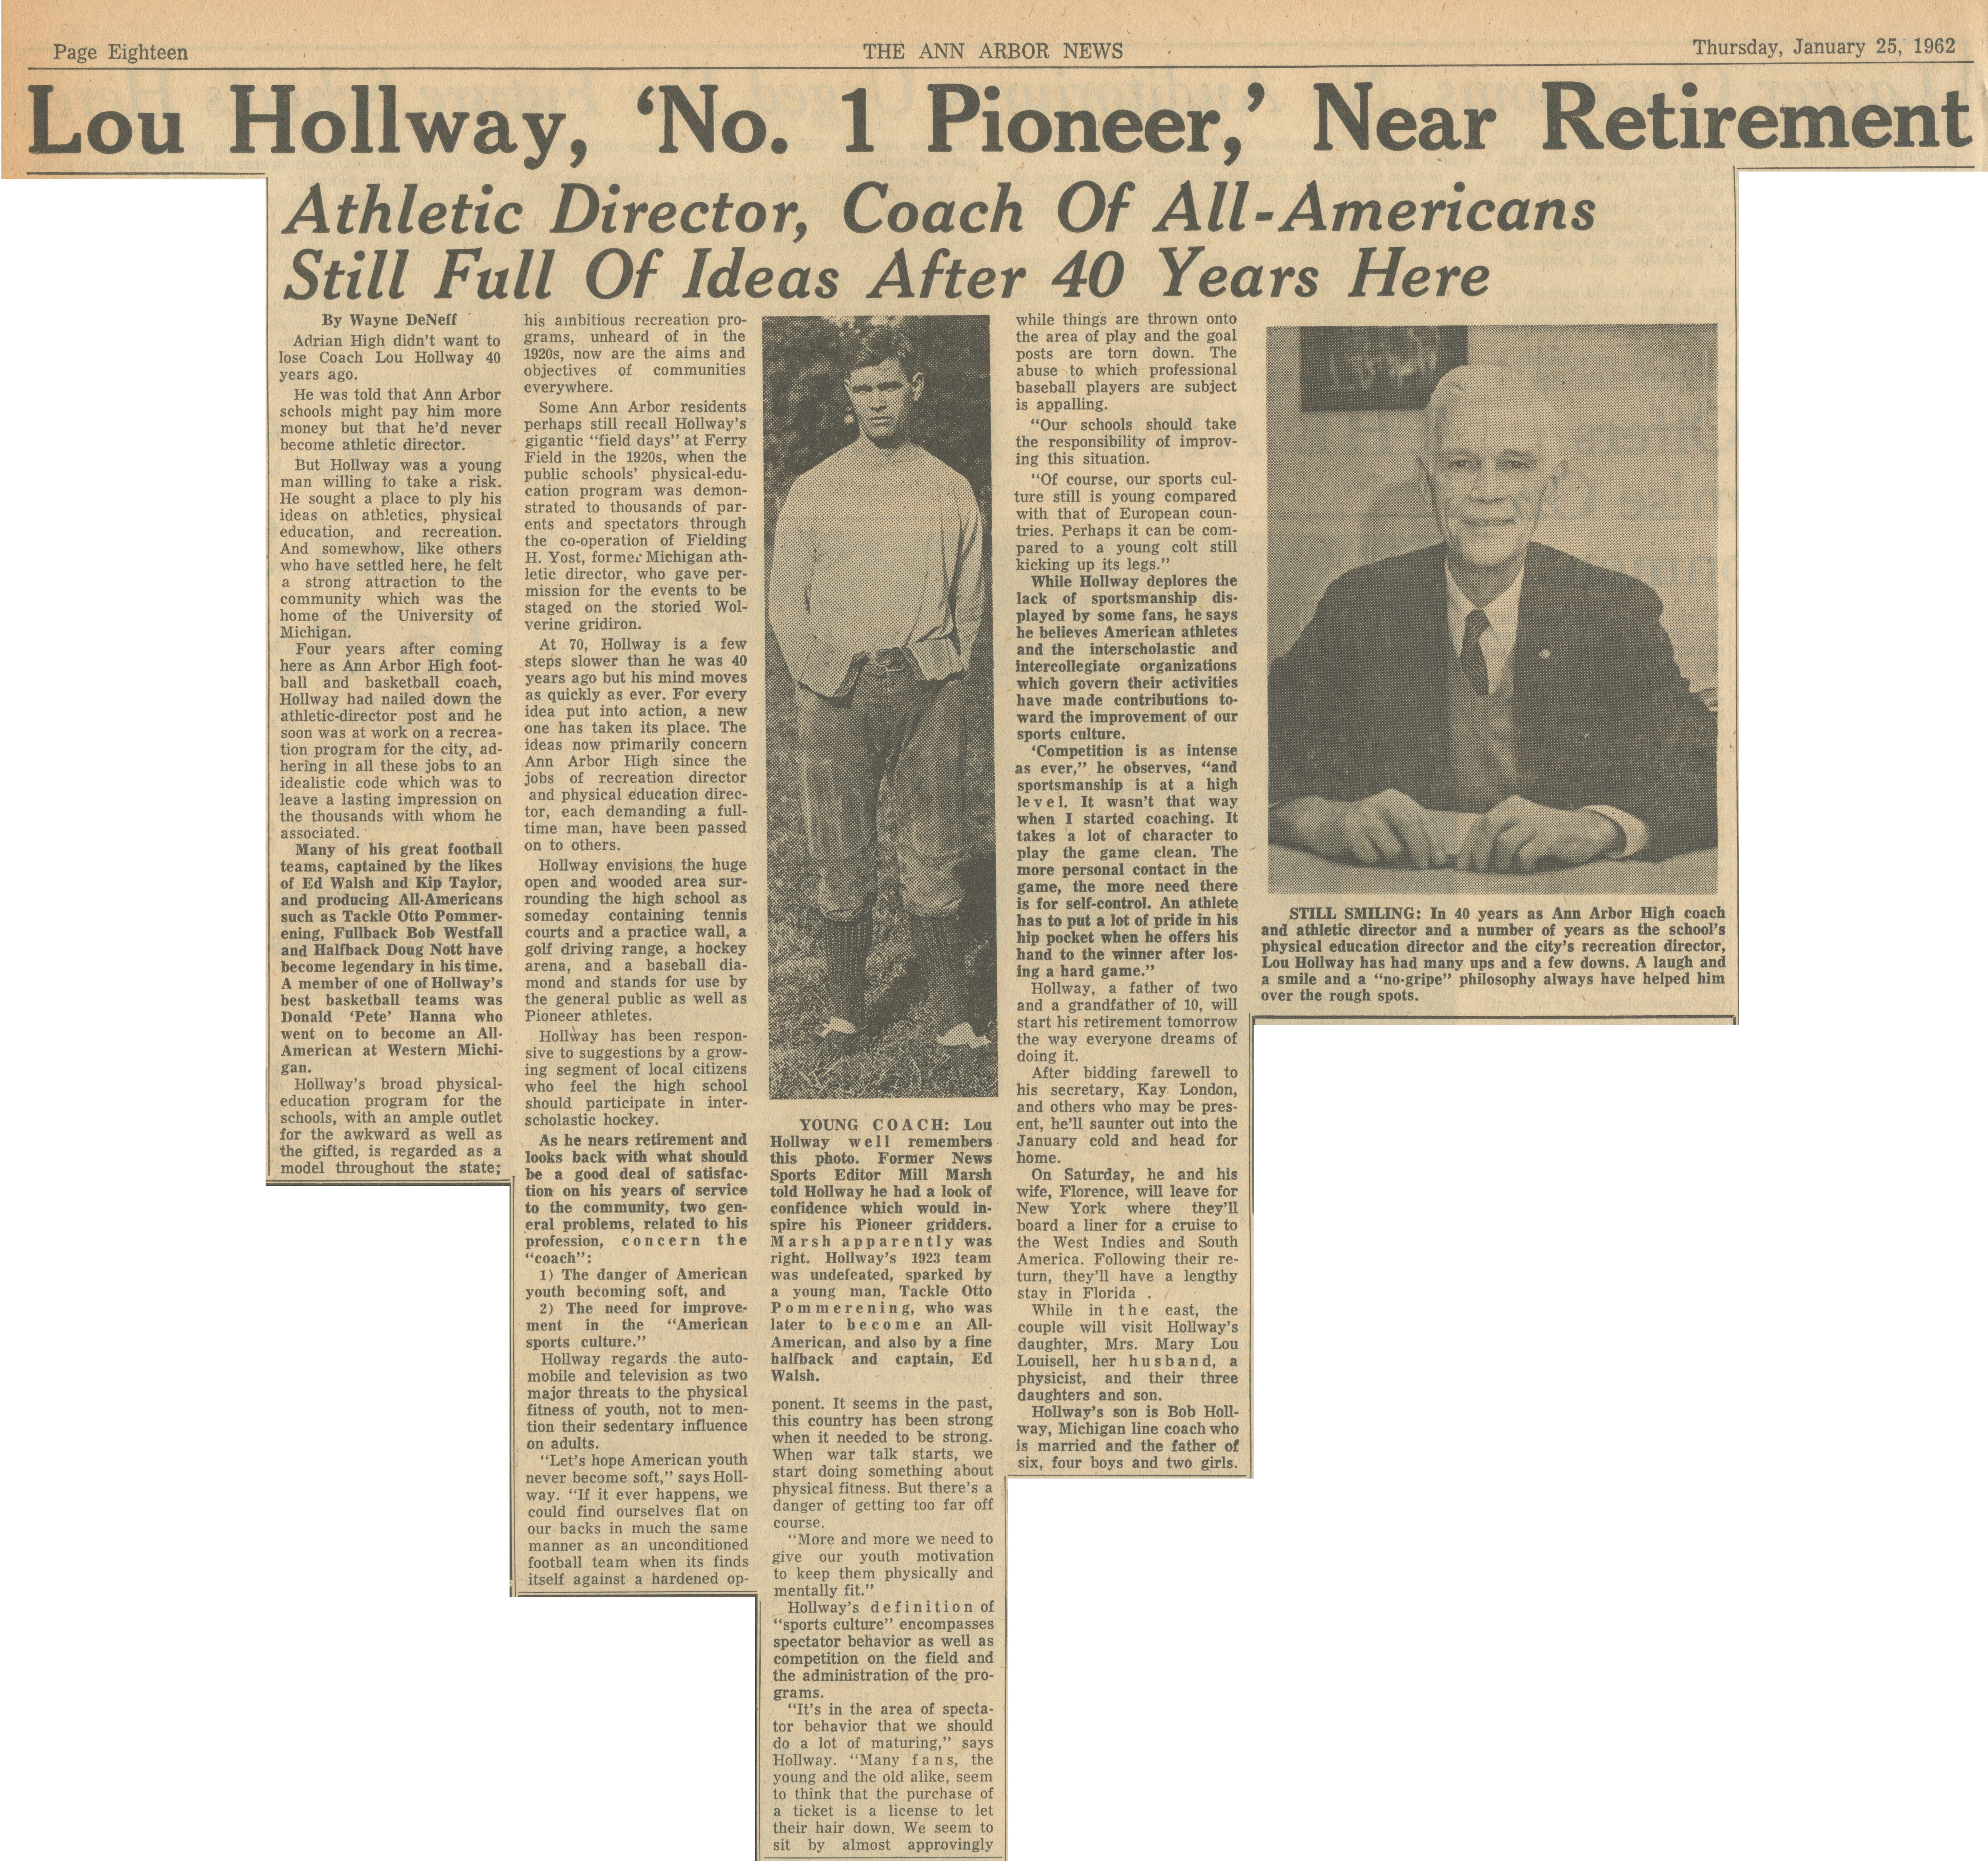 Lou Hollway, 'No. 1 Pioneer,' Near Retirement image